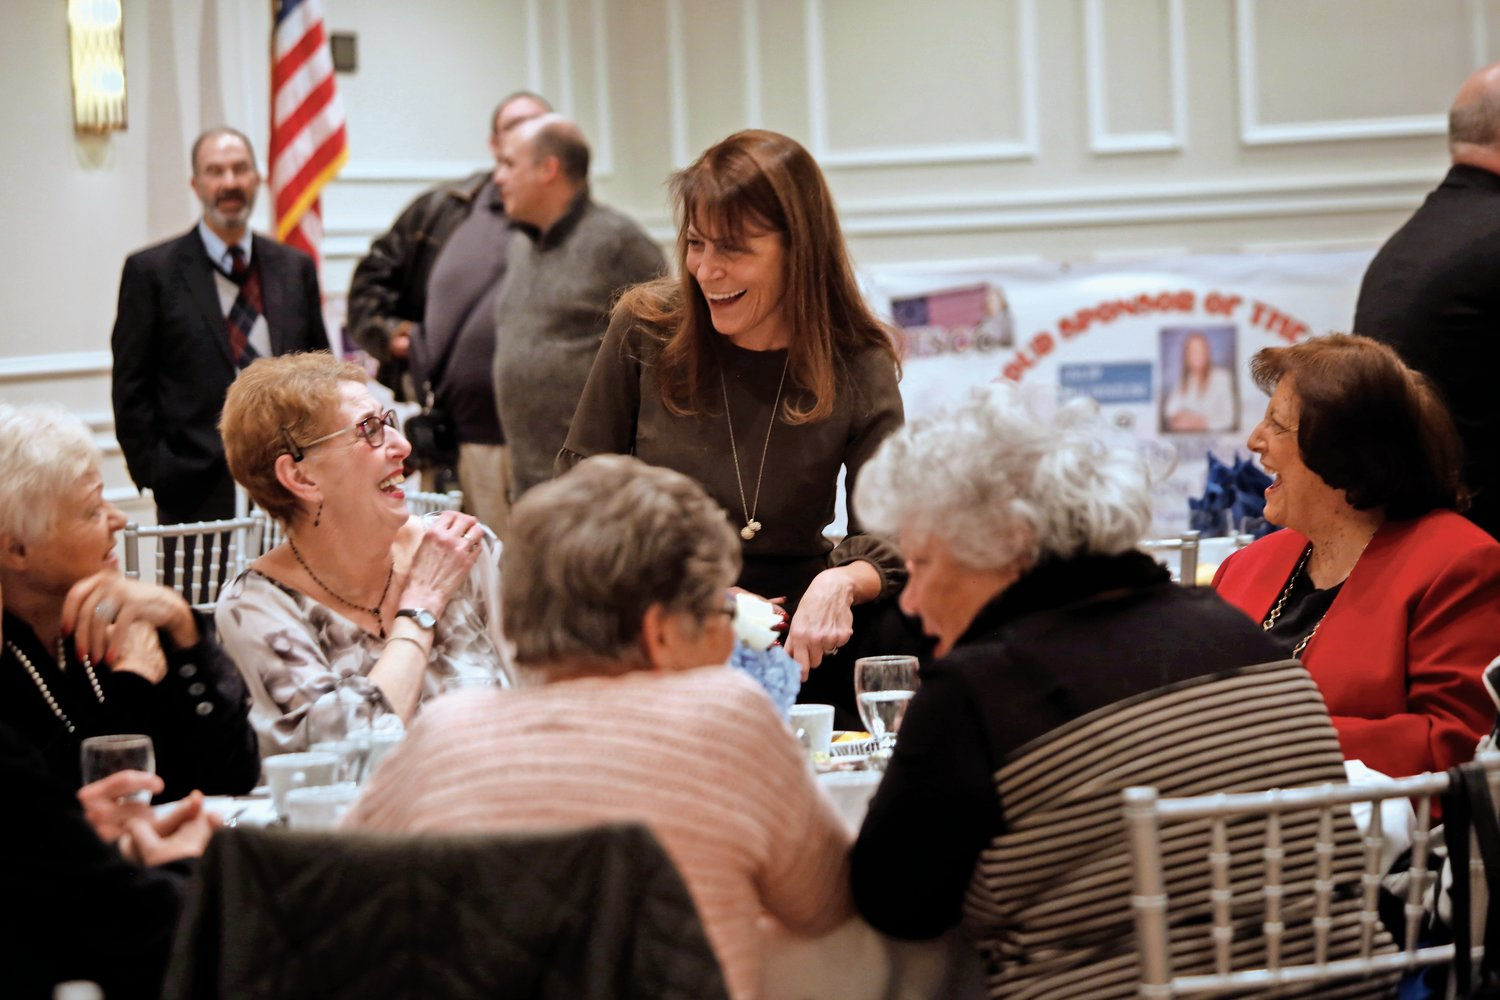 Chamber members mingled at the installation dinner.